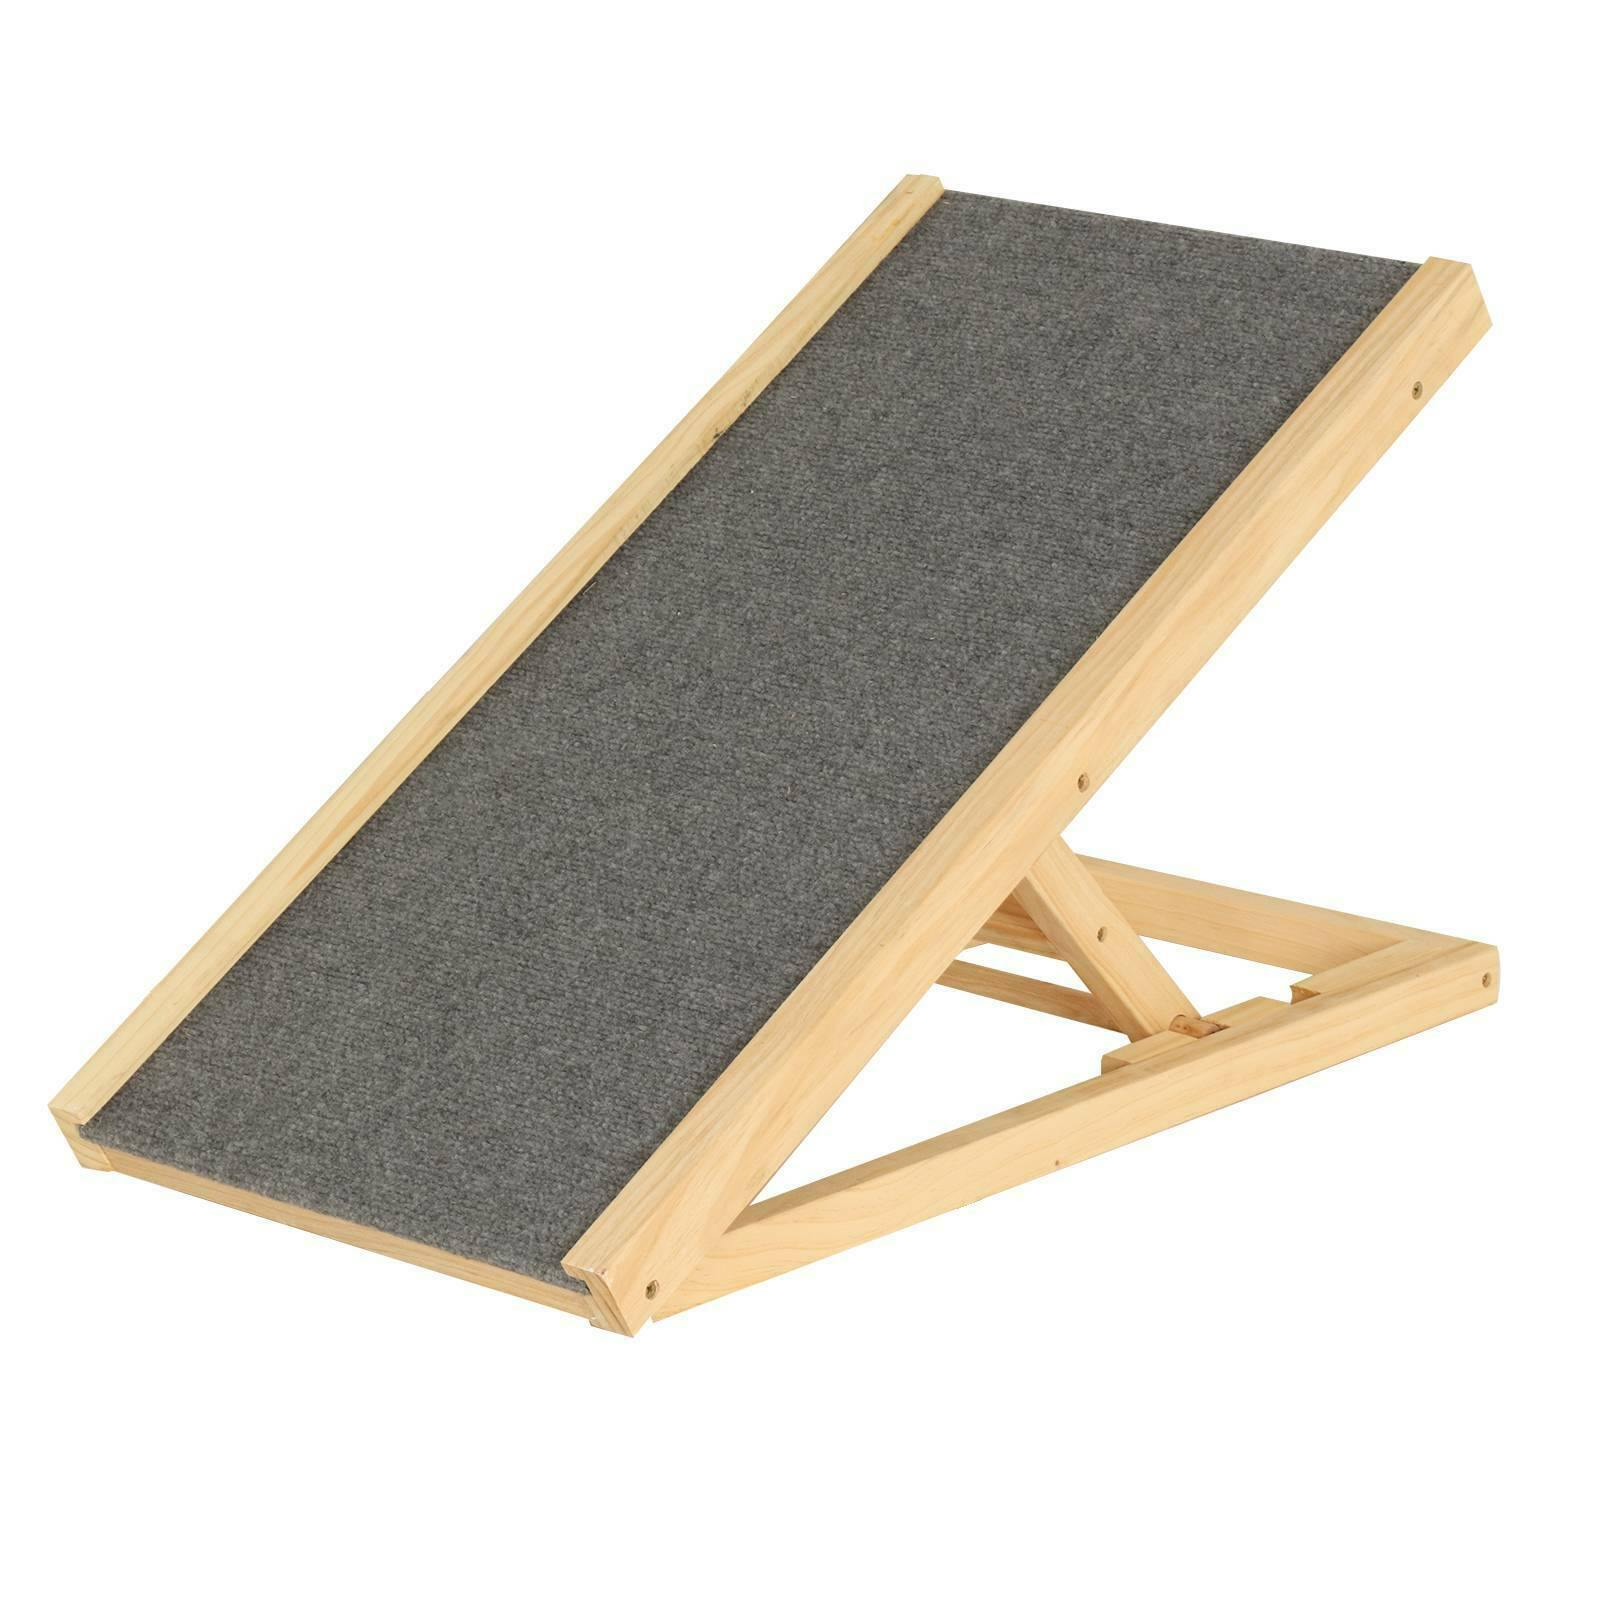 Safety First Foldable Wooden Pet Dog Ramp - Dog Chews